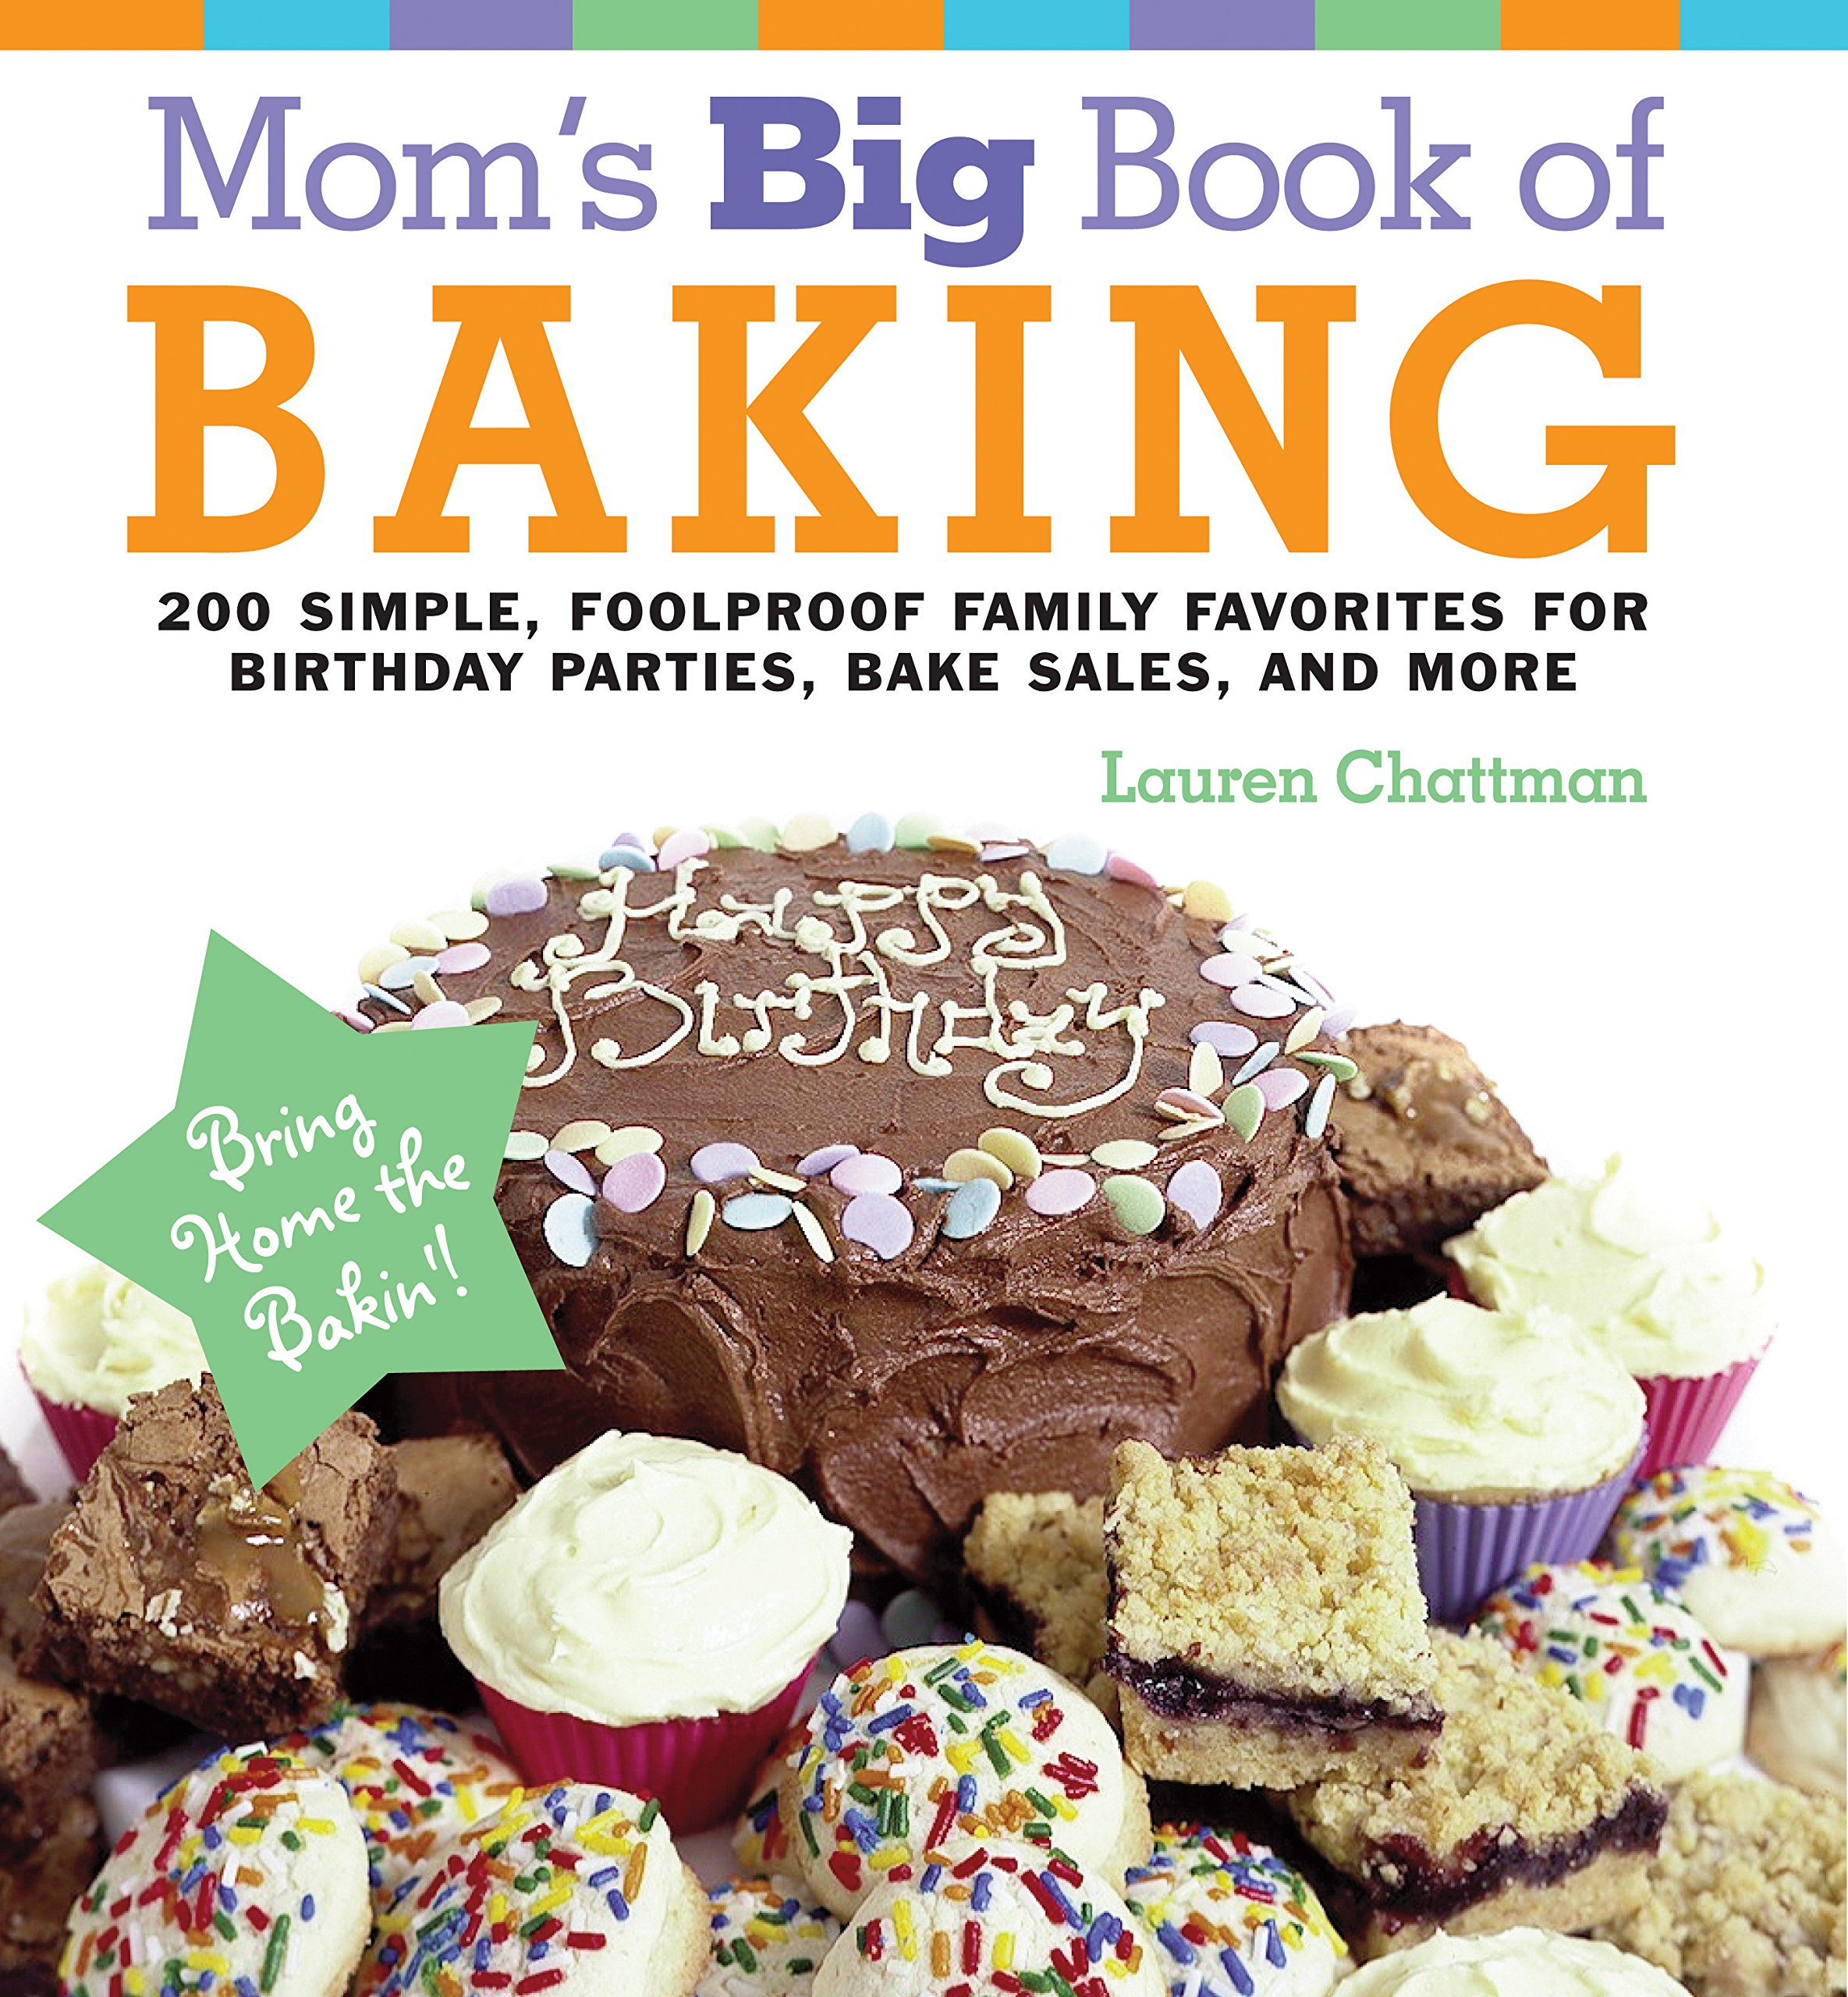 Read Online Mom's Big Book of Baking, Reprint: 200 Simple, Foolproof Family Favorites for Birthday Parties, Bake Sales, and More pdf epub